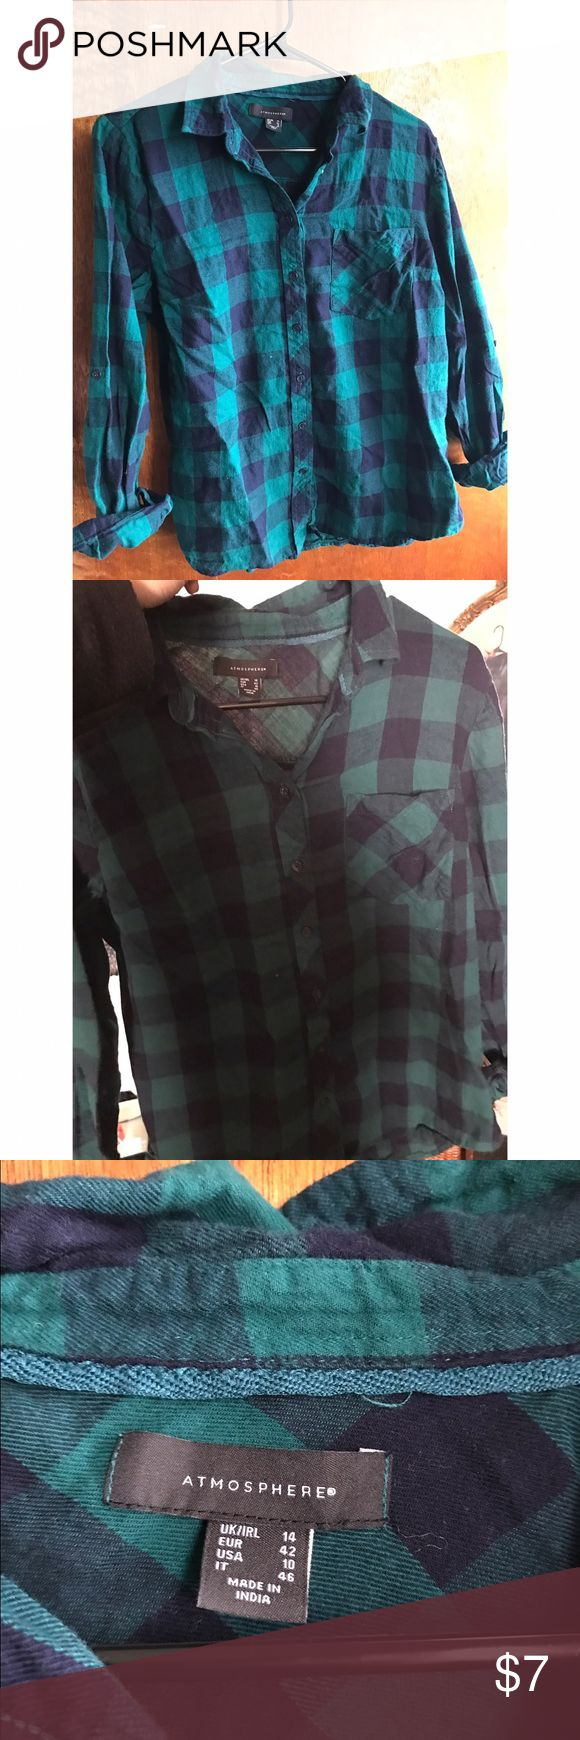 Green and blue plaid shirt Originally from Primark, a green and blue plaid shirt. Please see photo 2 for an accurate picture of the color of the shirt. It's a size 10 which is a M or L, very comfy and cute Tops Button Down Shirts